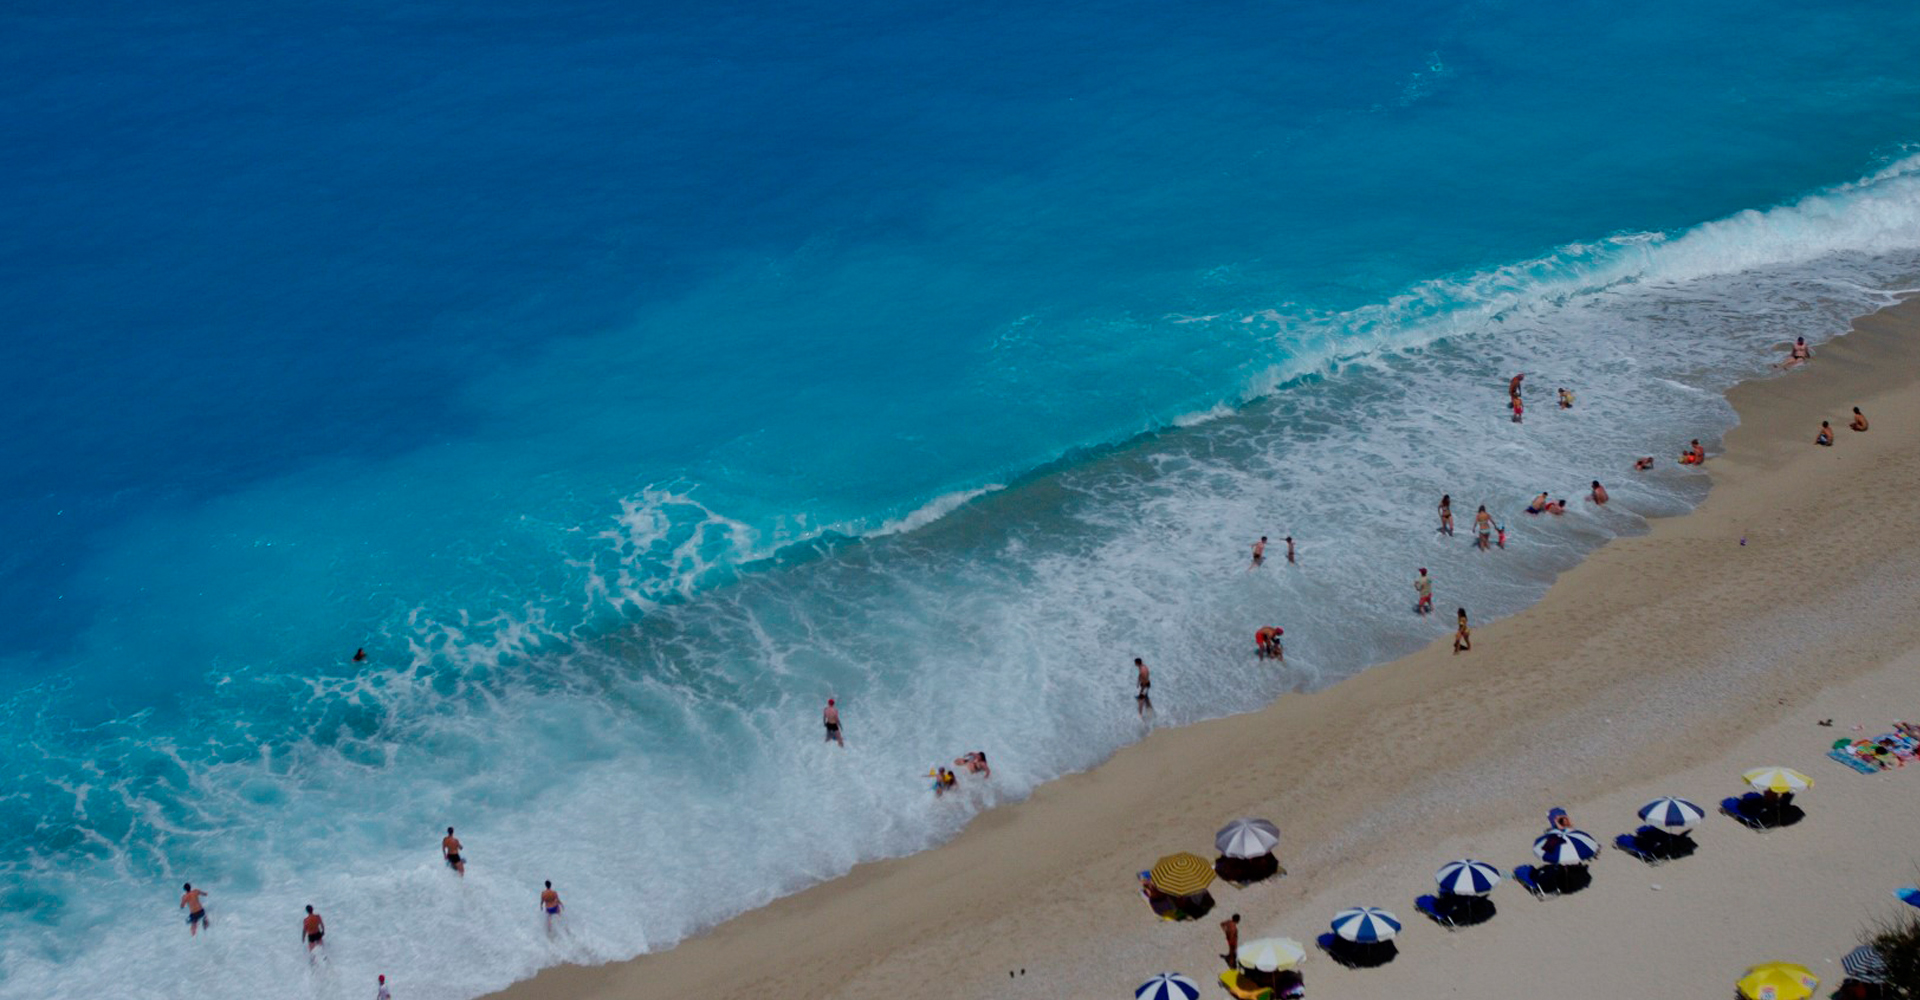 Egremni - The best beach of Lefkada Island